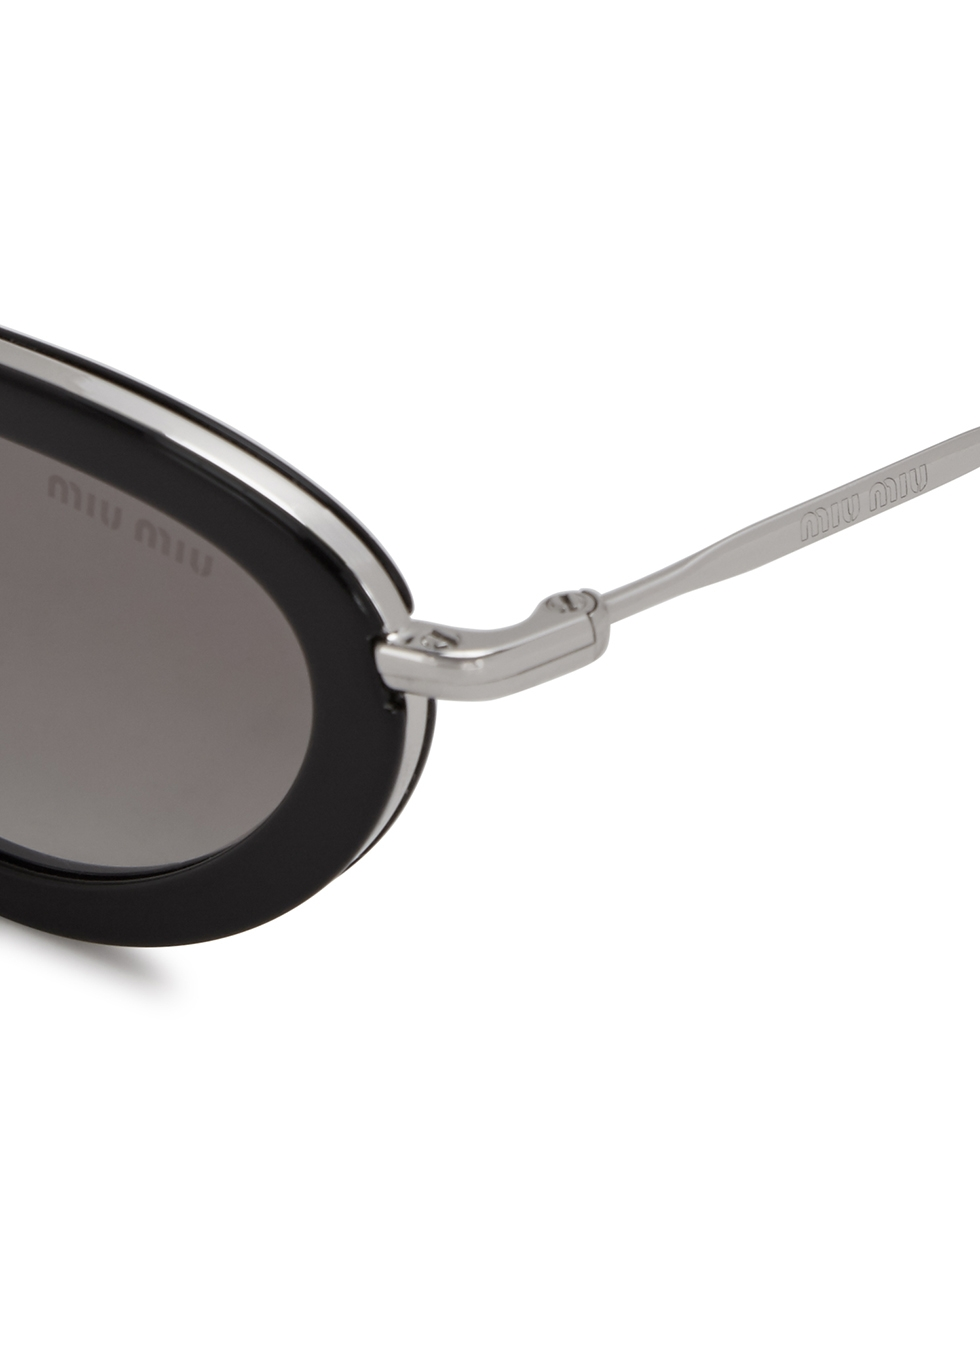 Mirrored oval-frame sunglasses - Miu Miu